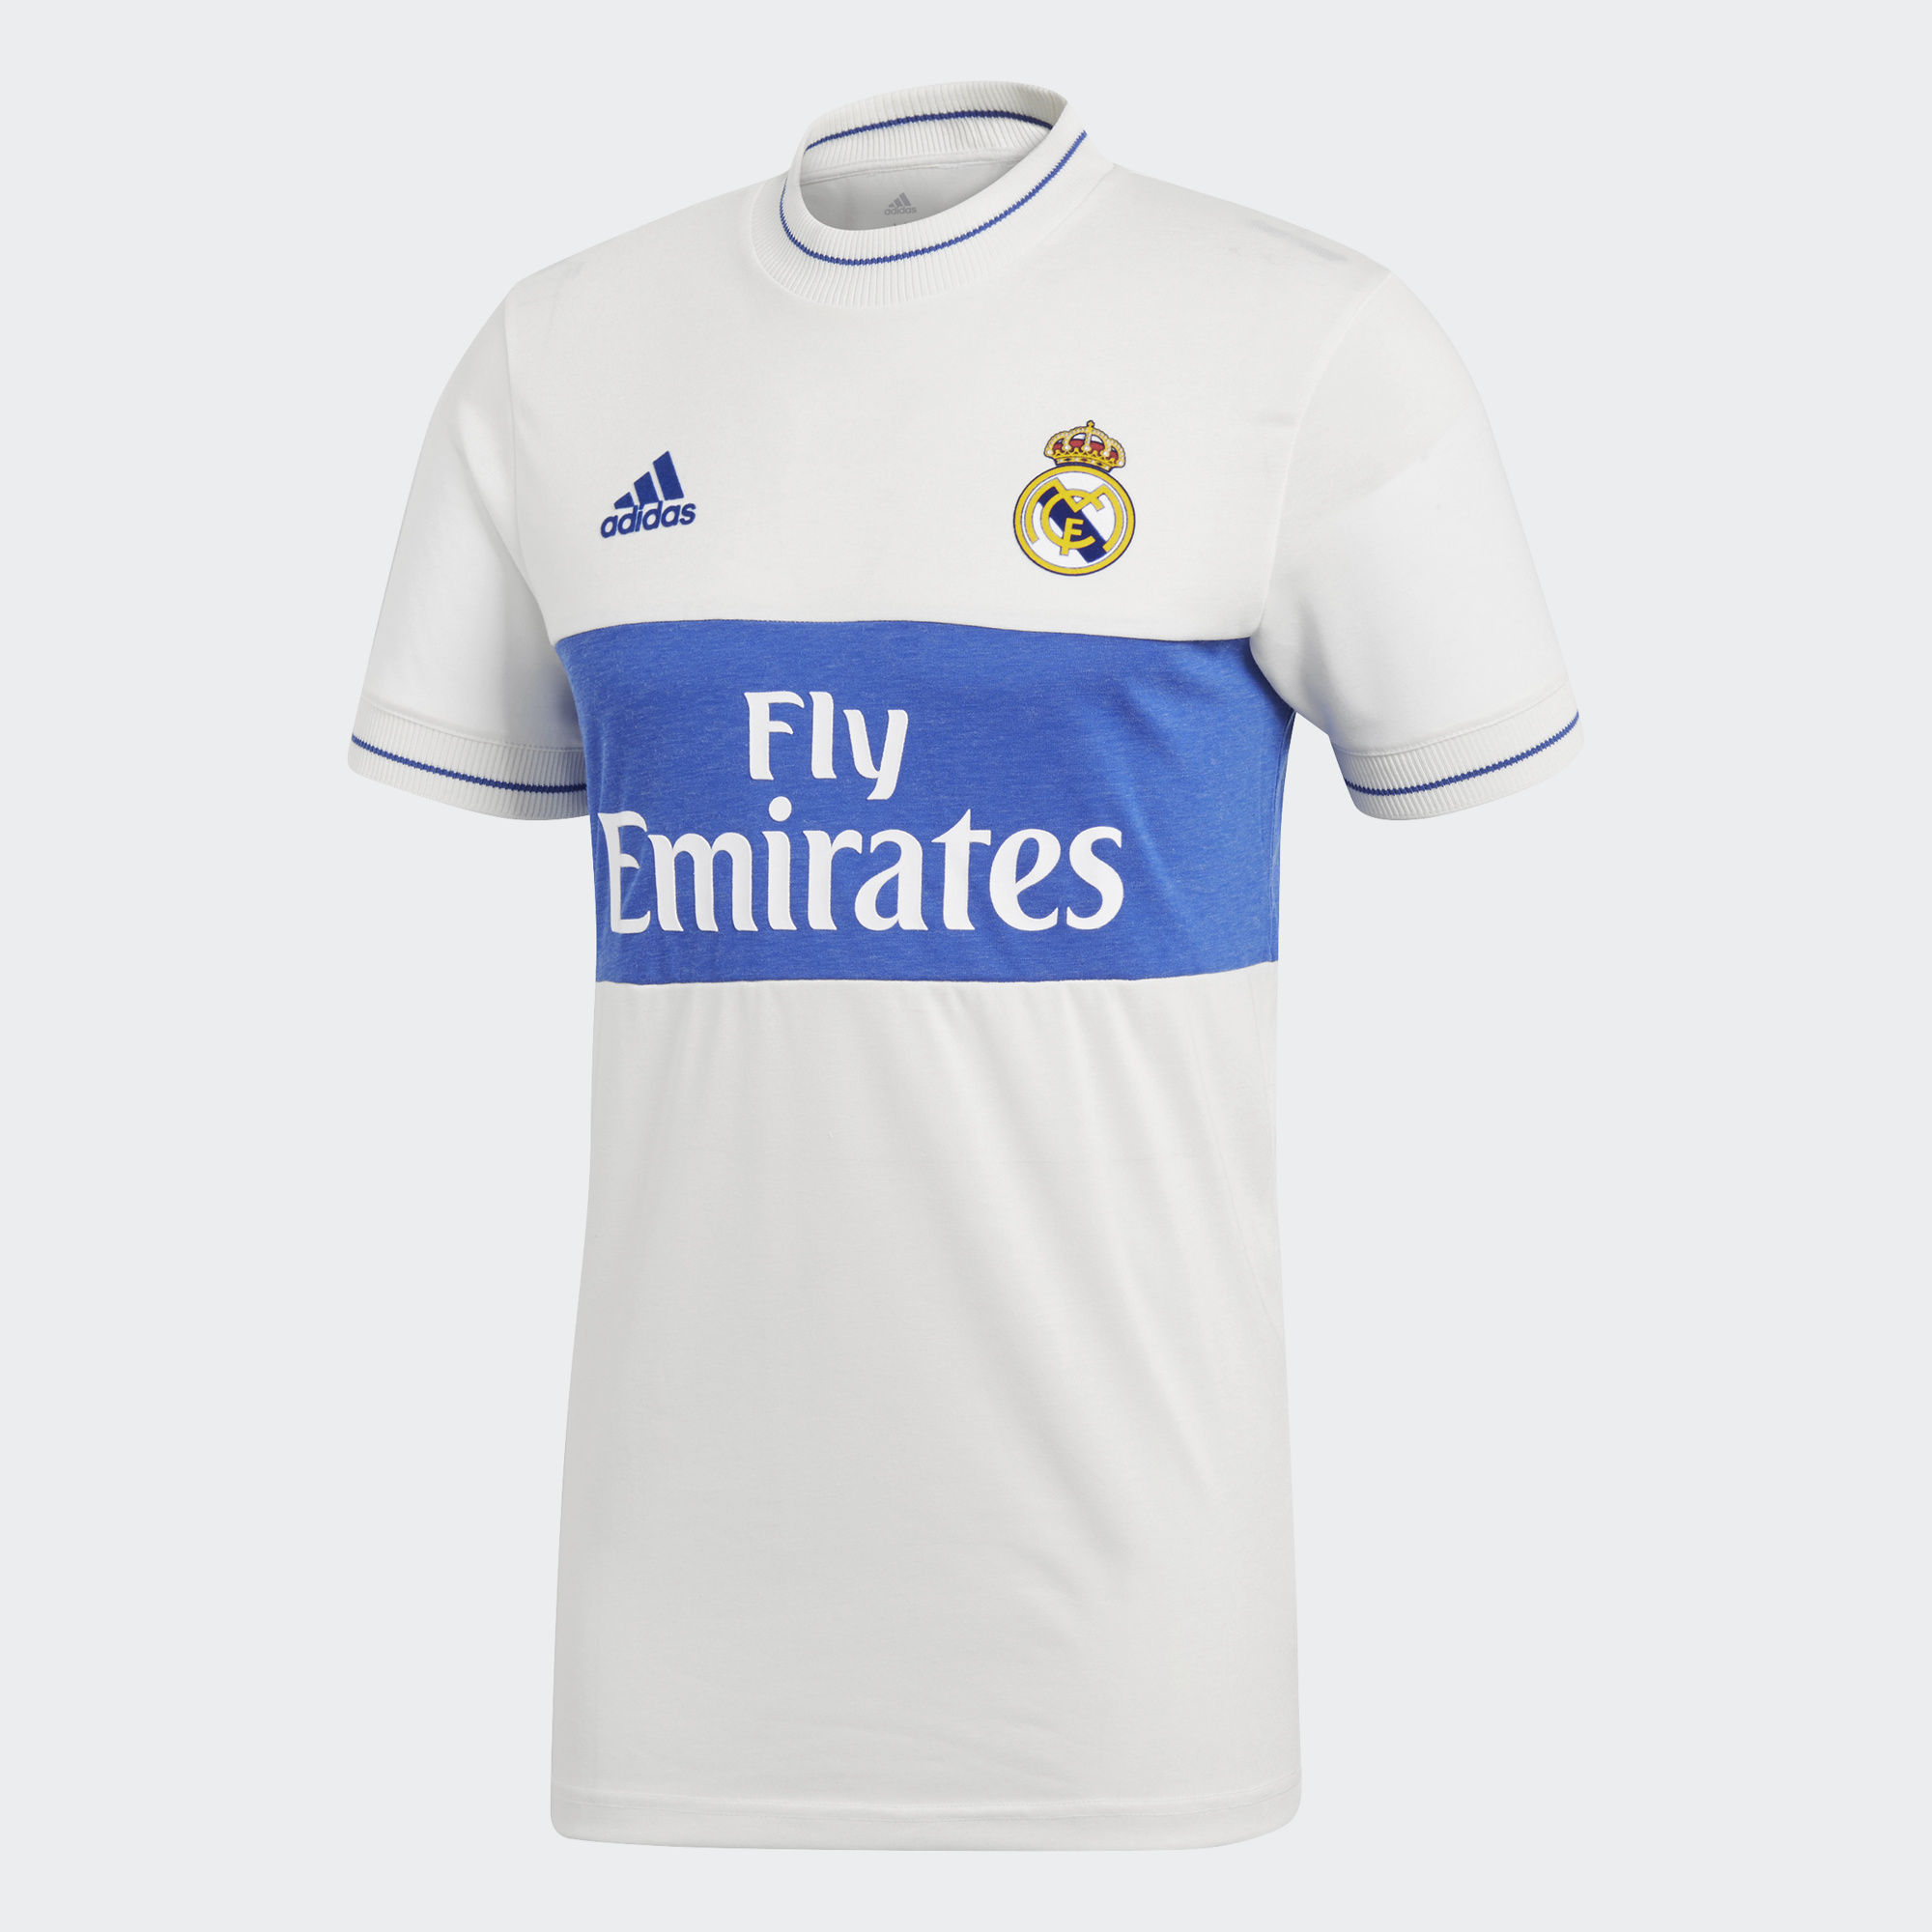 604989f0540 ... adidas_real_madrid_icon_jersey_white_bold_blue_core_white_d.jpg · Click  to enlarge image  adidas_real_madrid_icon_jersey_white_bold_blue_core_white_e.jpg ...